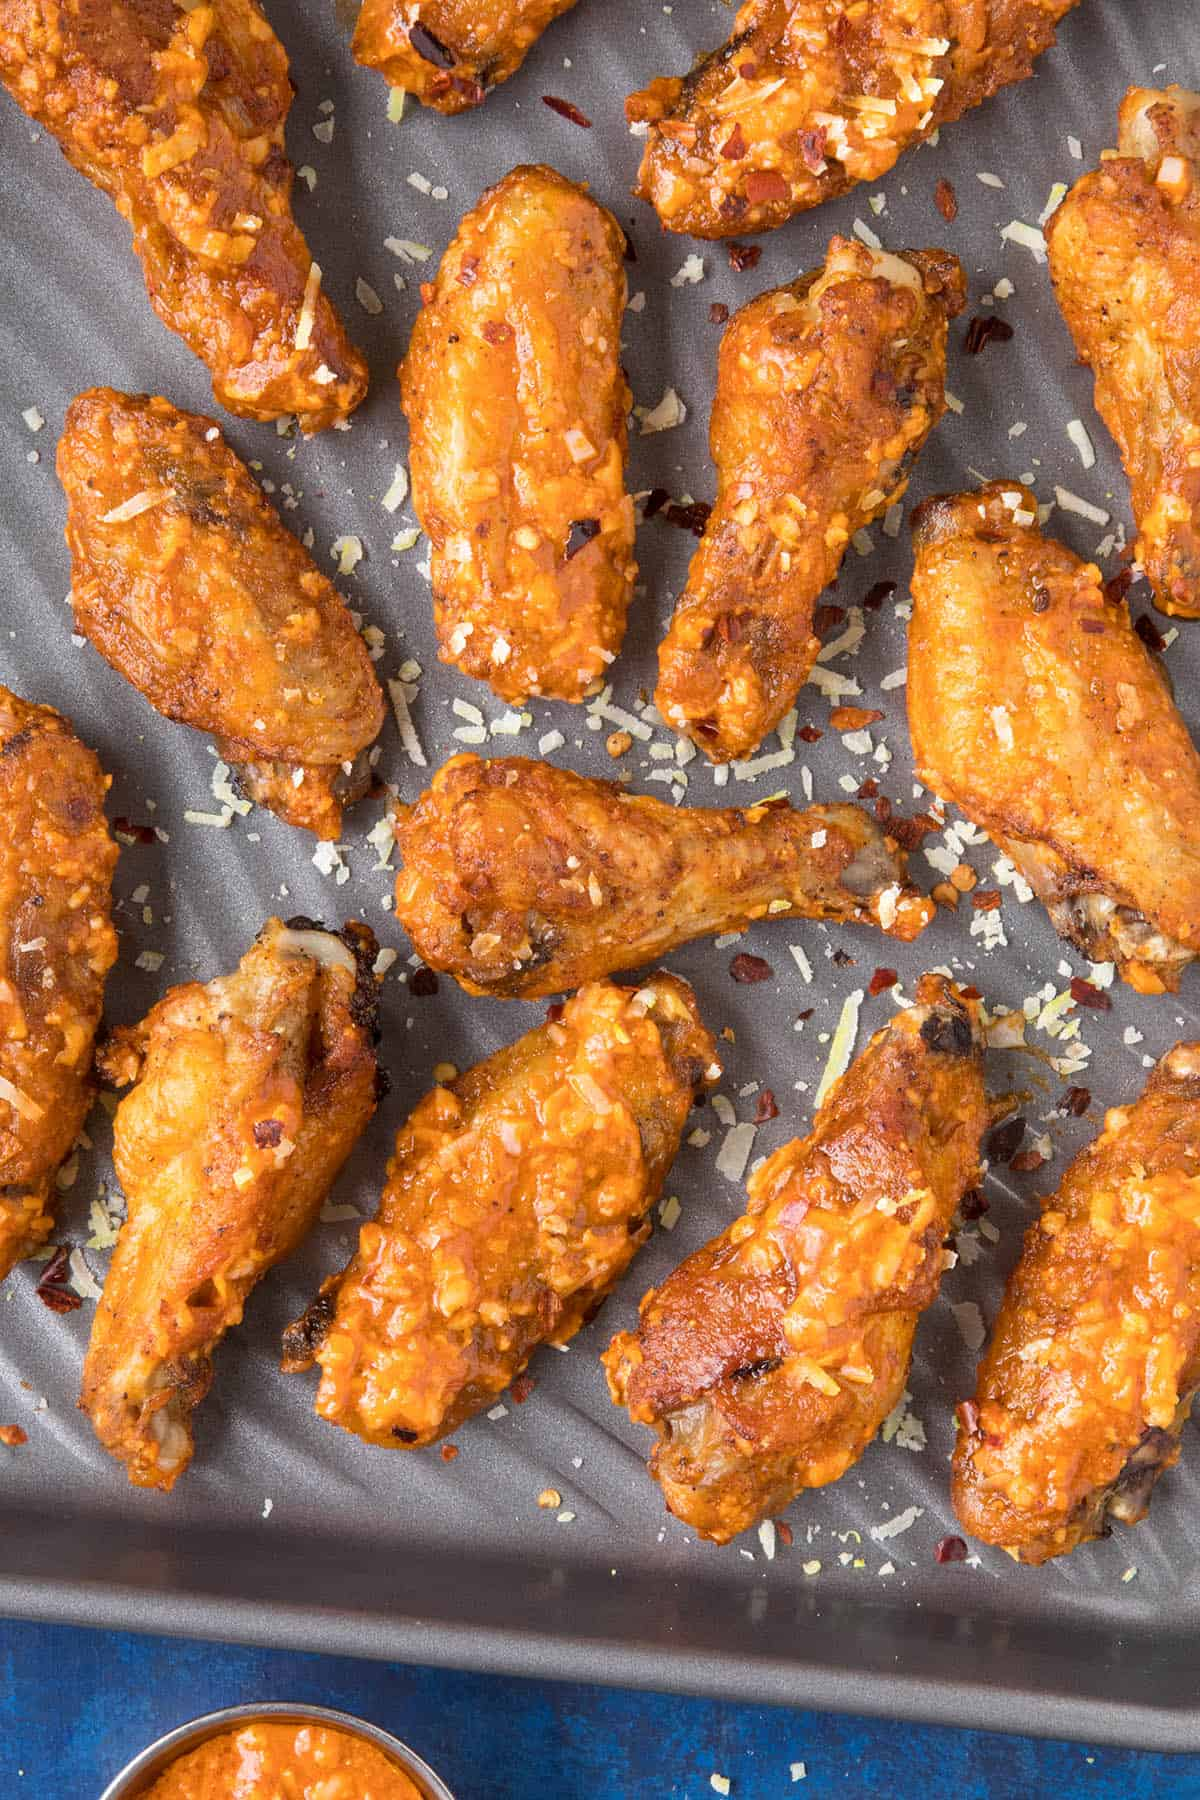 Garlic Parmesan Chicken Wings - In a pan, ready to serve